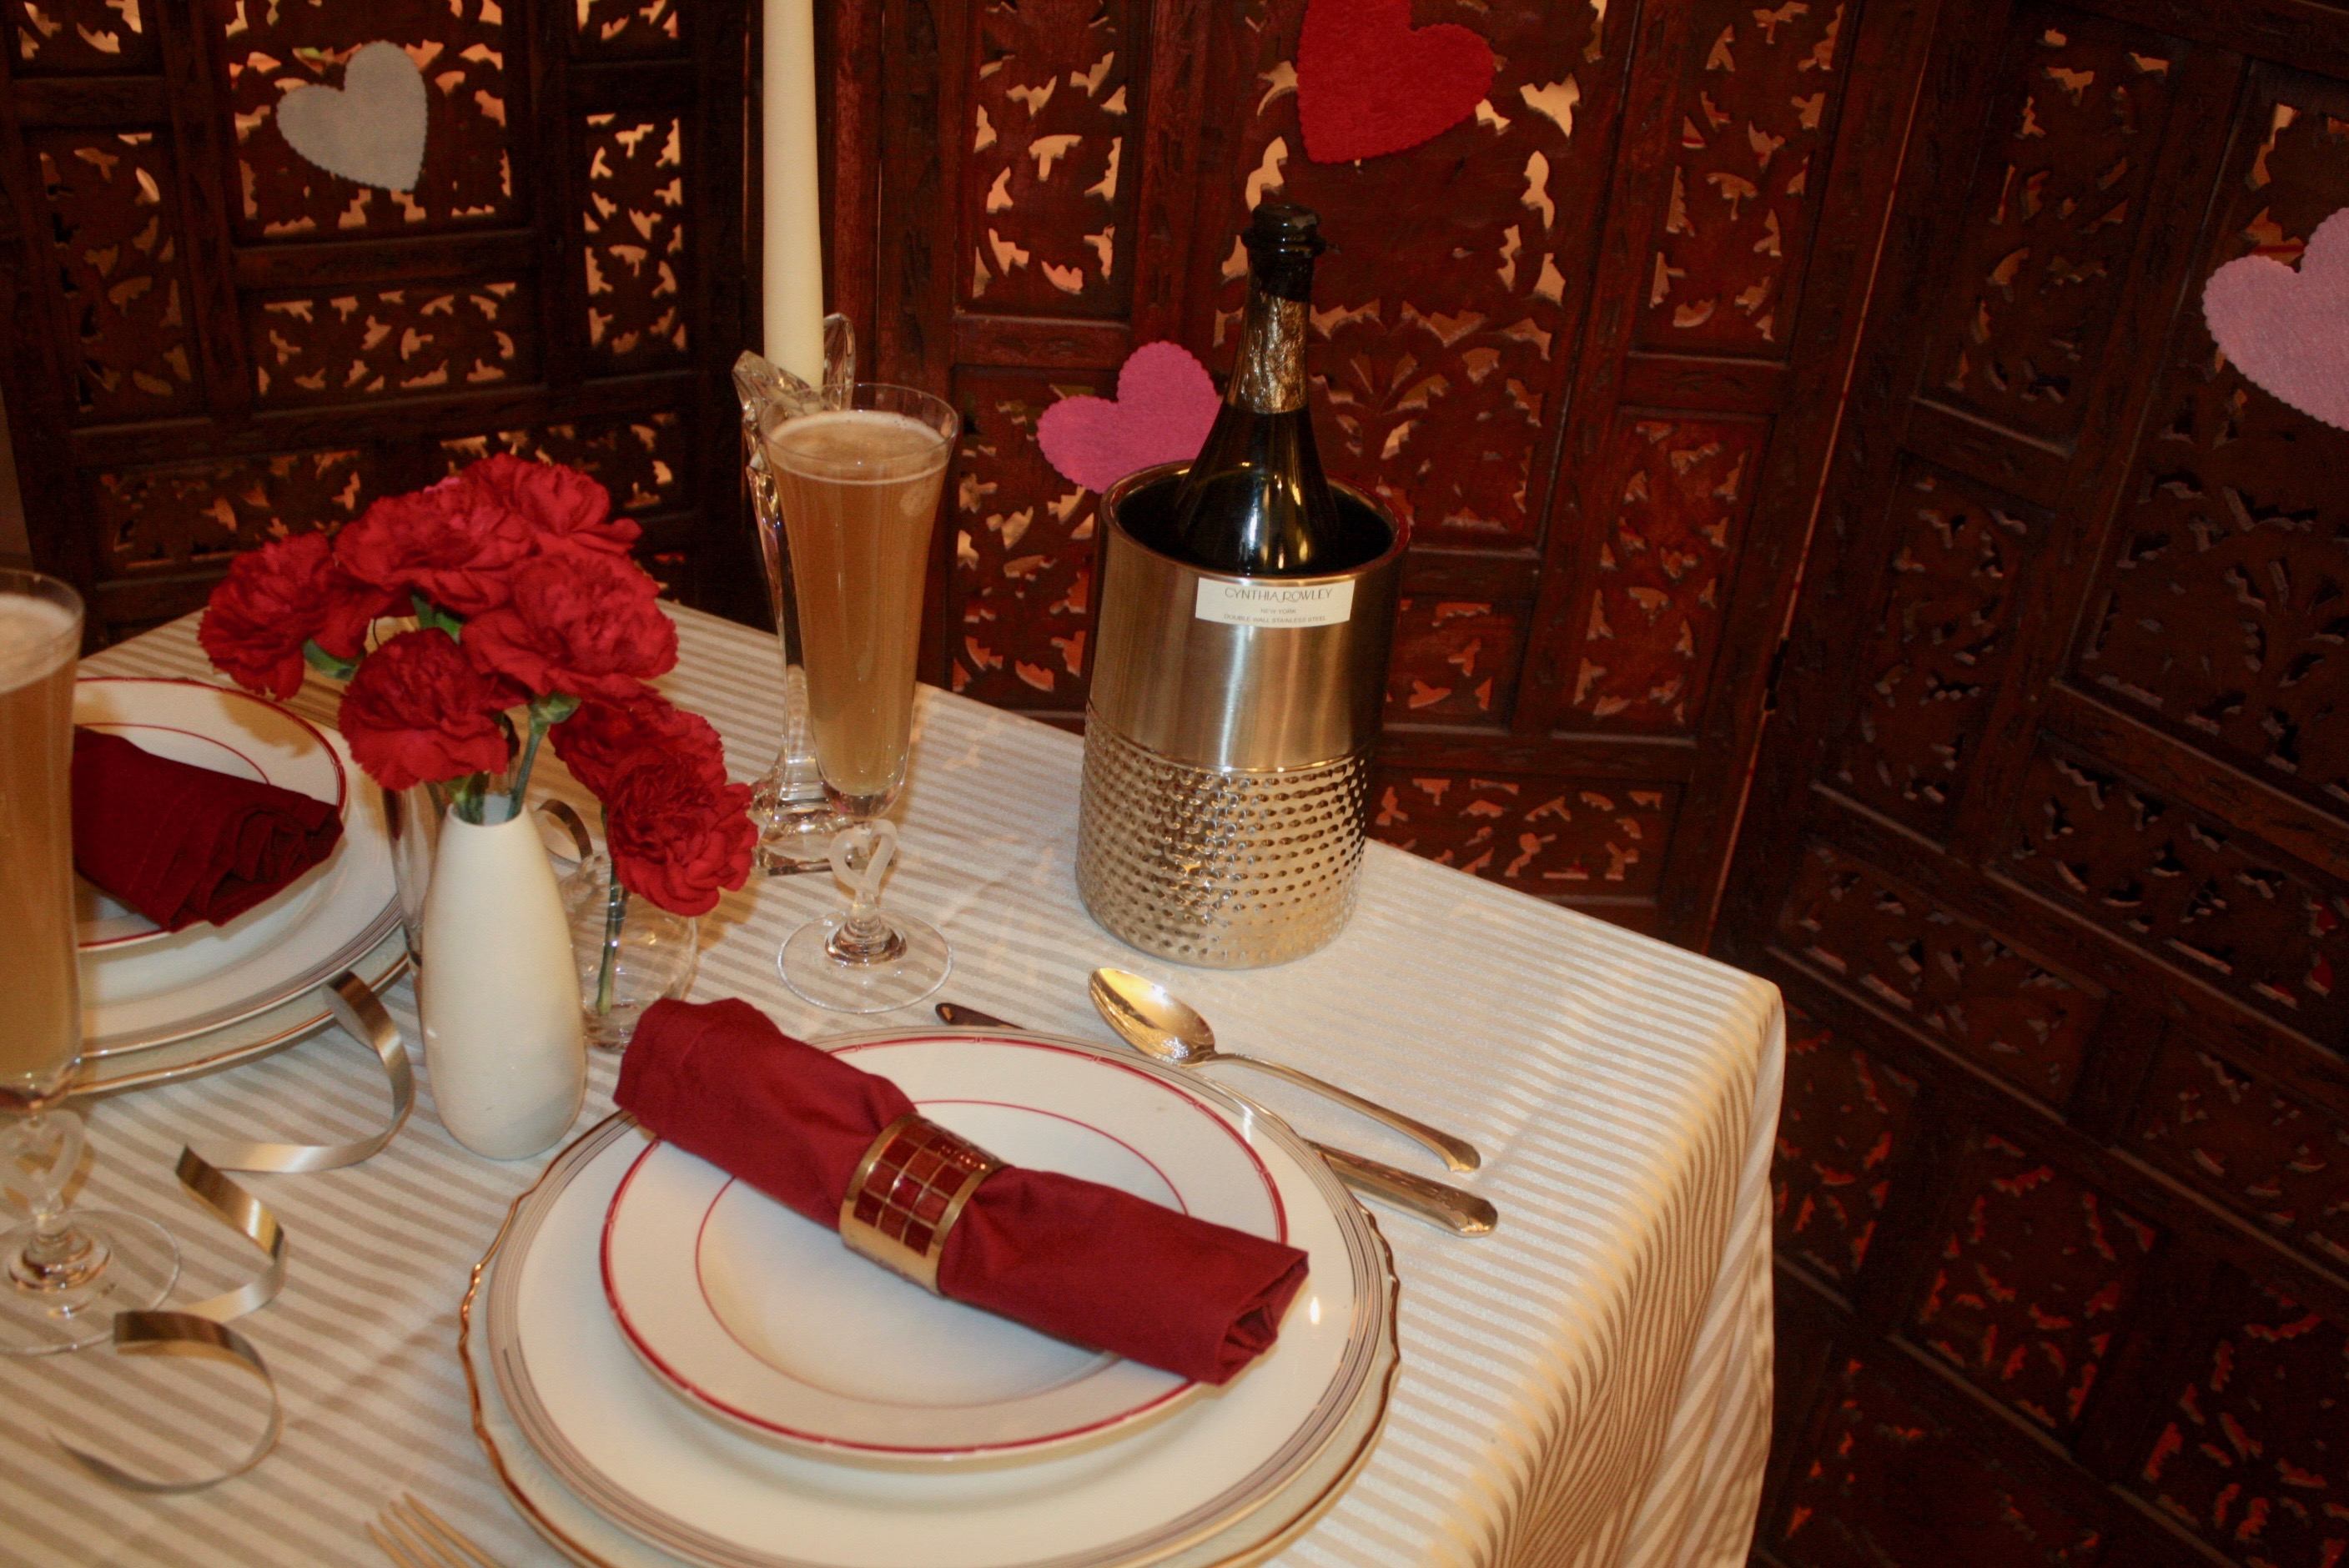 & Valentine\u0027s Day Table Setting: Romantic Table for Two - Moshi Motif